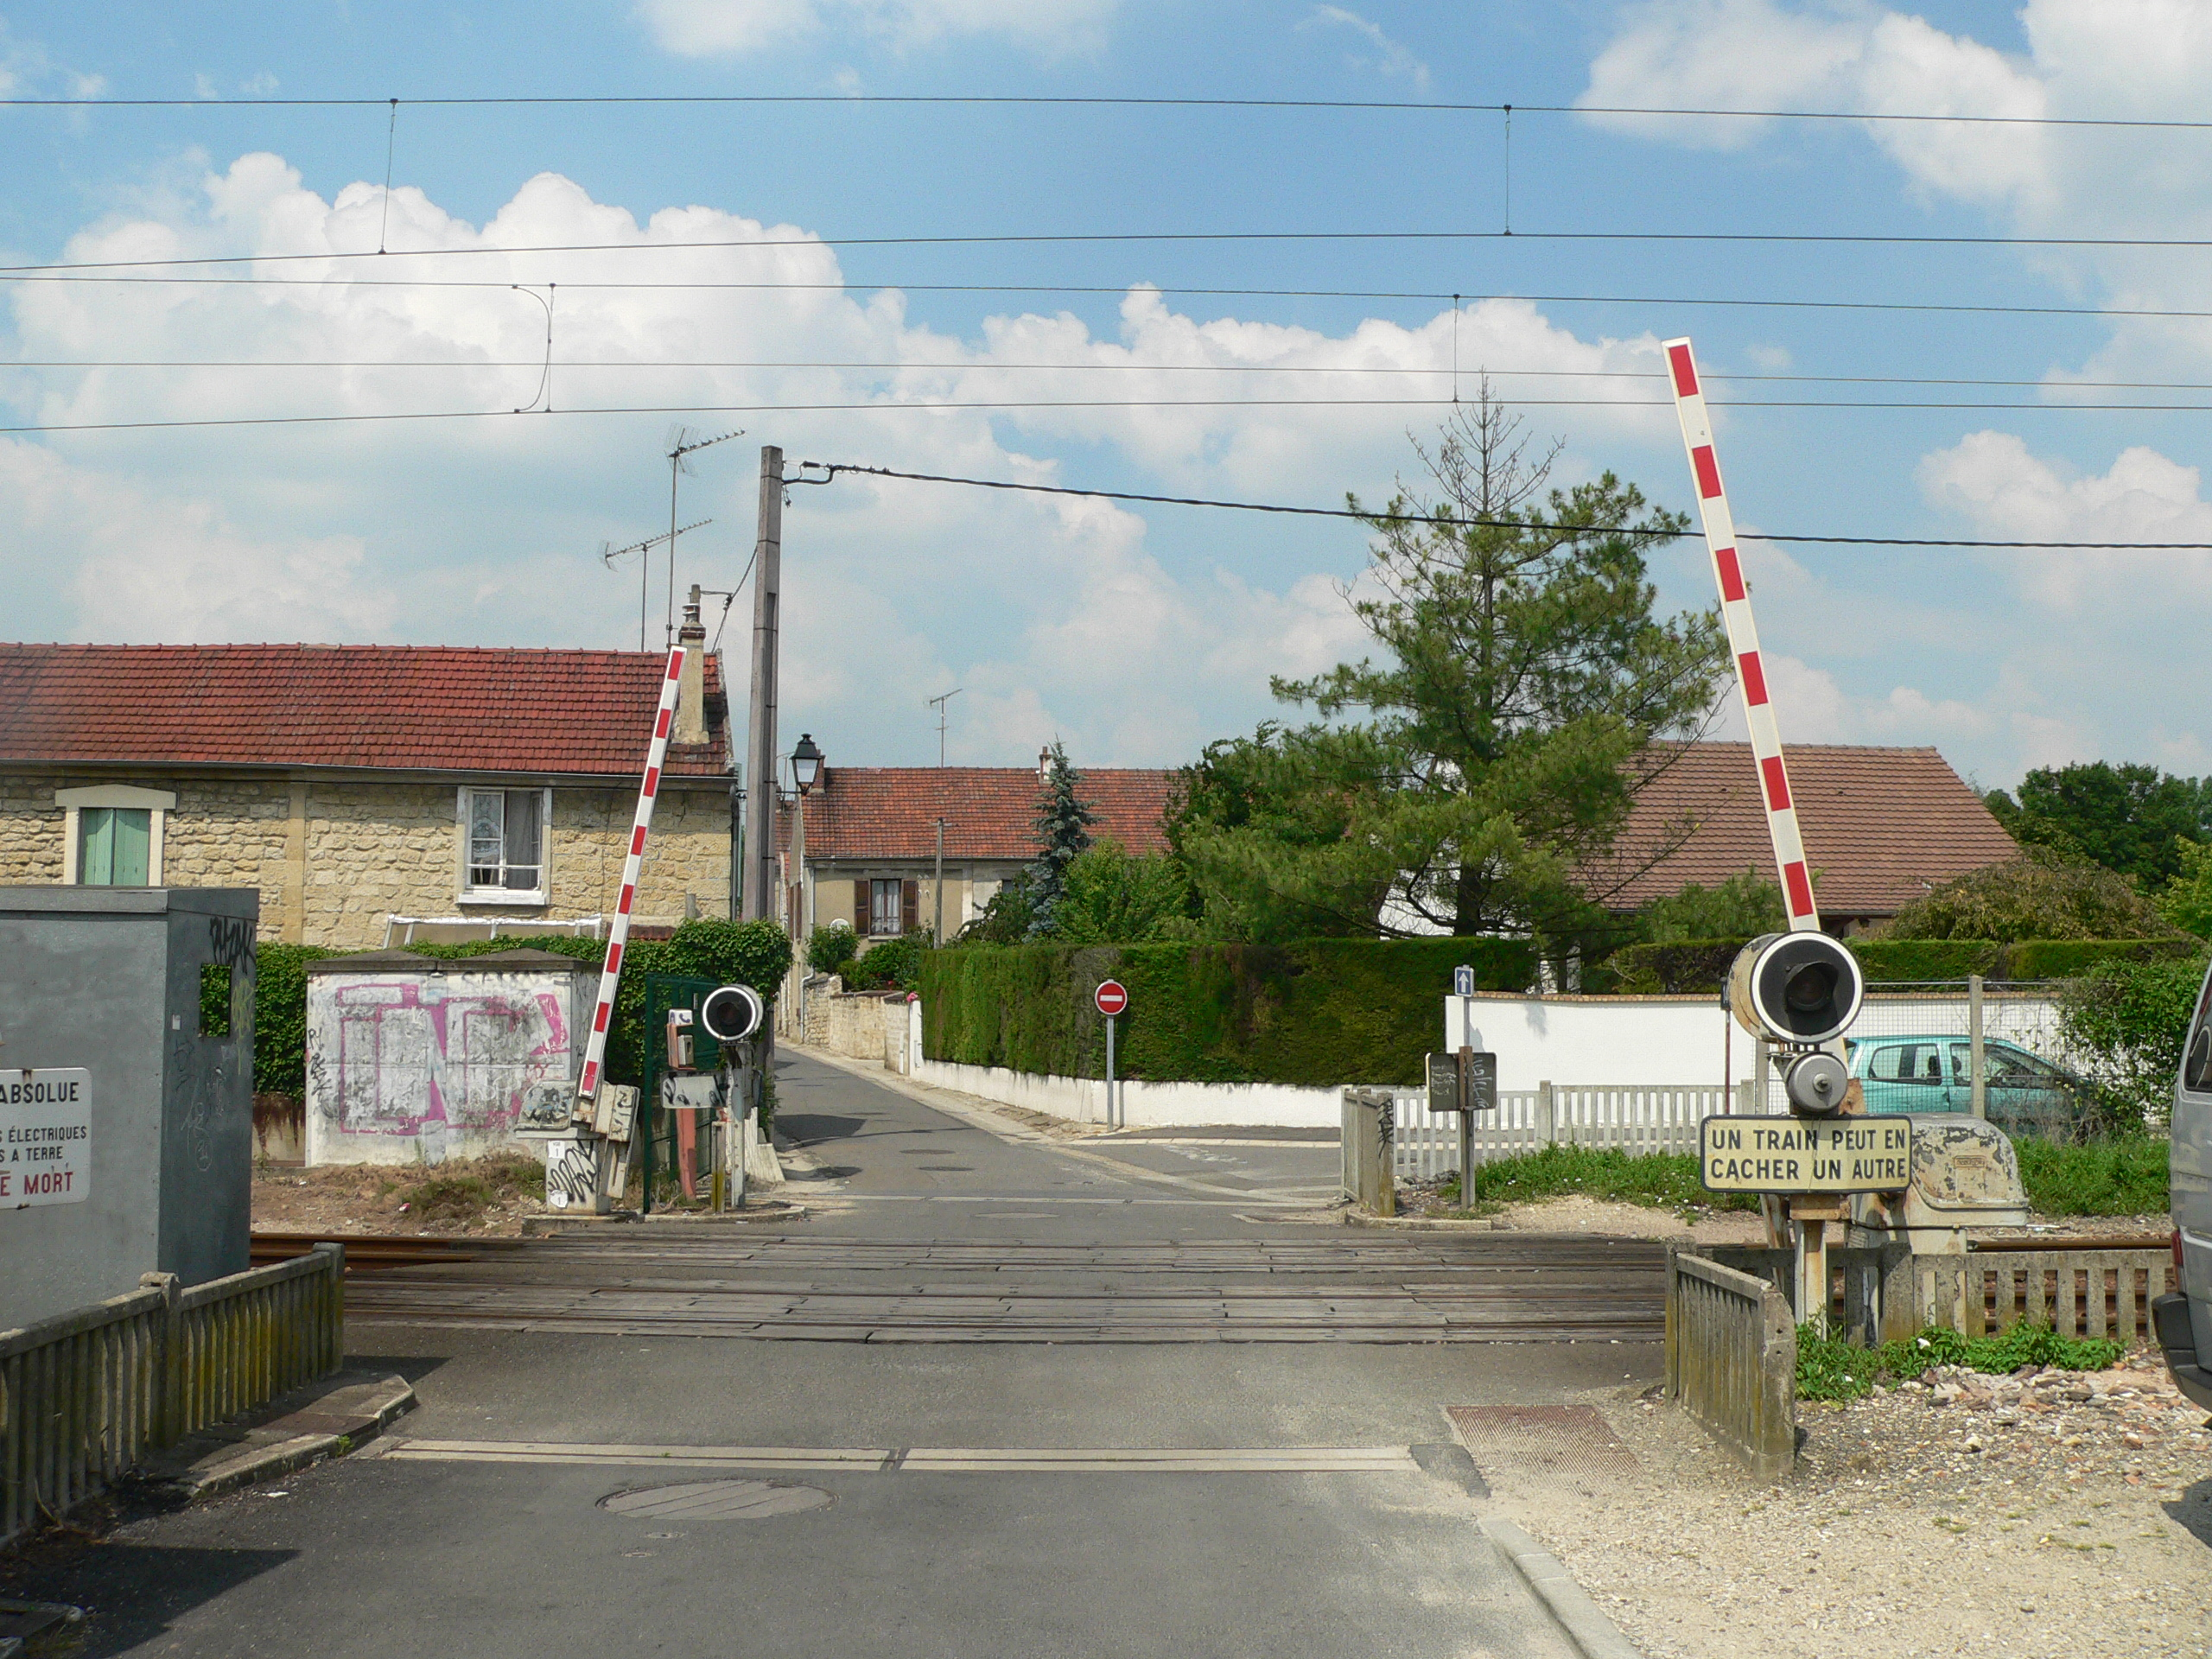 http://upload.wikimedia.org/wikipedia/commons/8/89/Level_crossing_P1210798.jpg